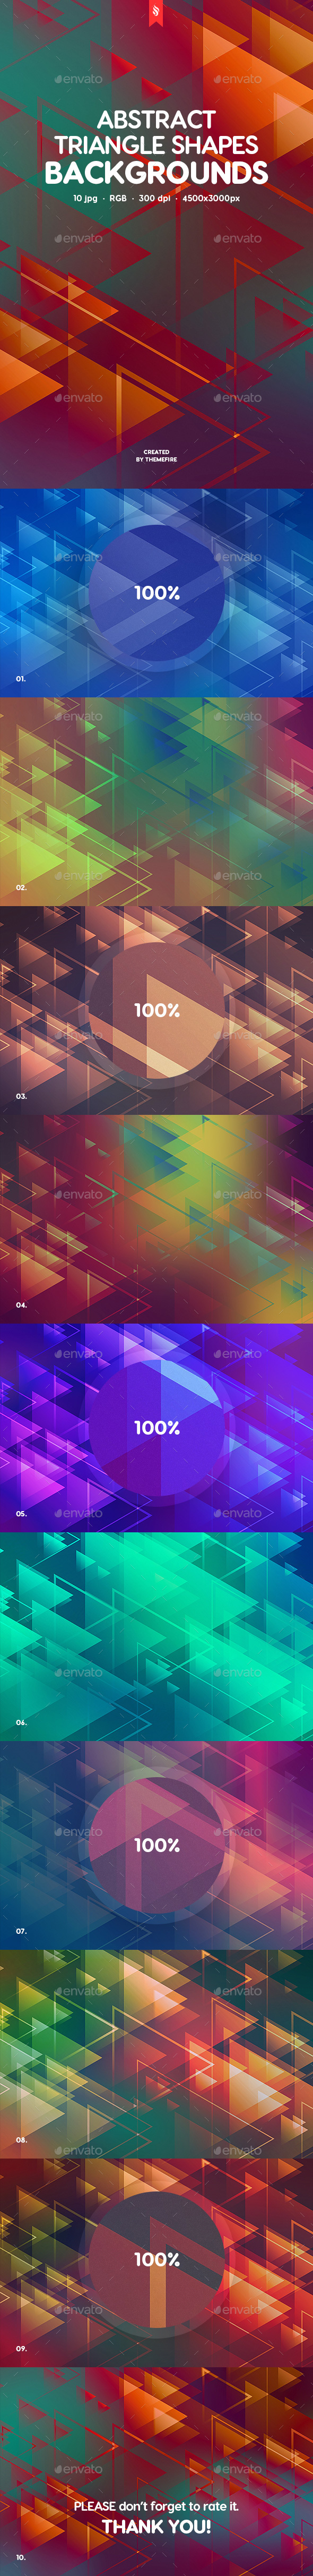 Abstract Triangle Shapes Backgrounds - Backgrounds Graphics